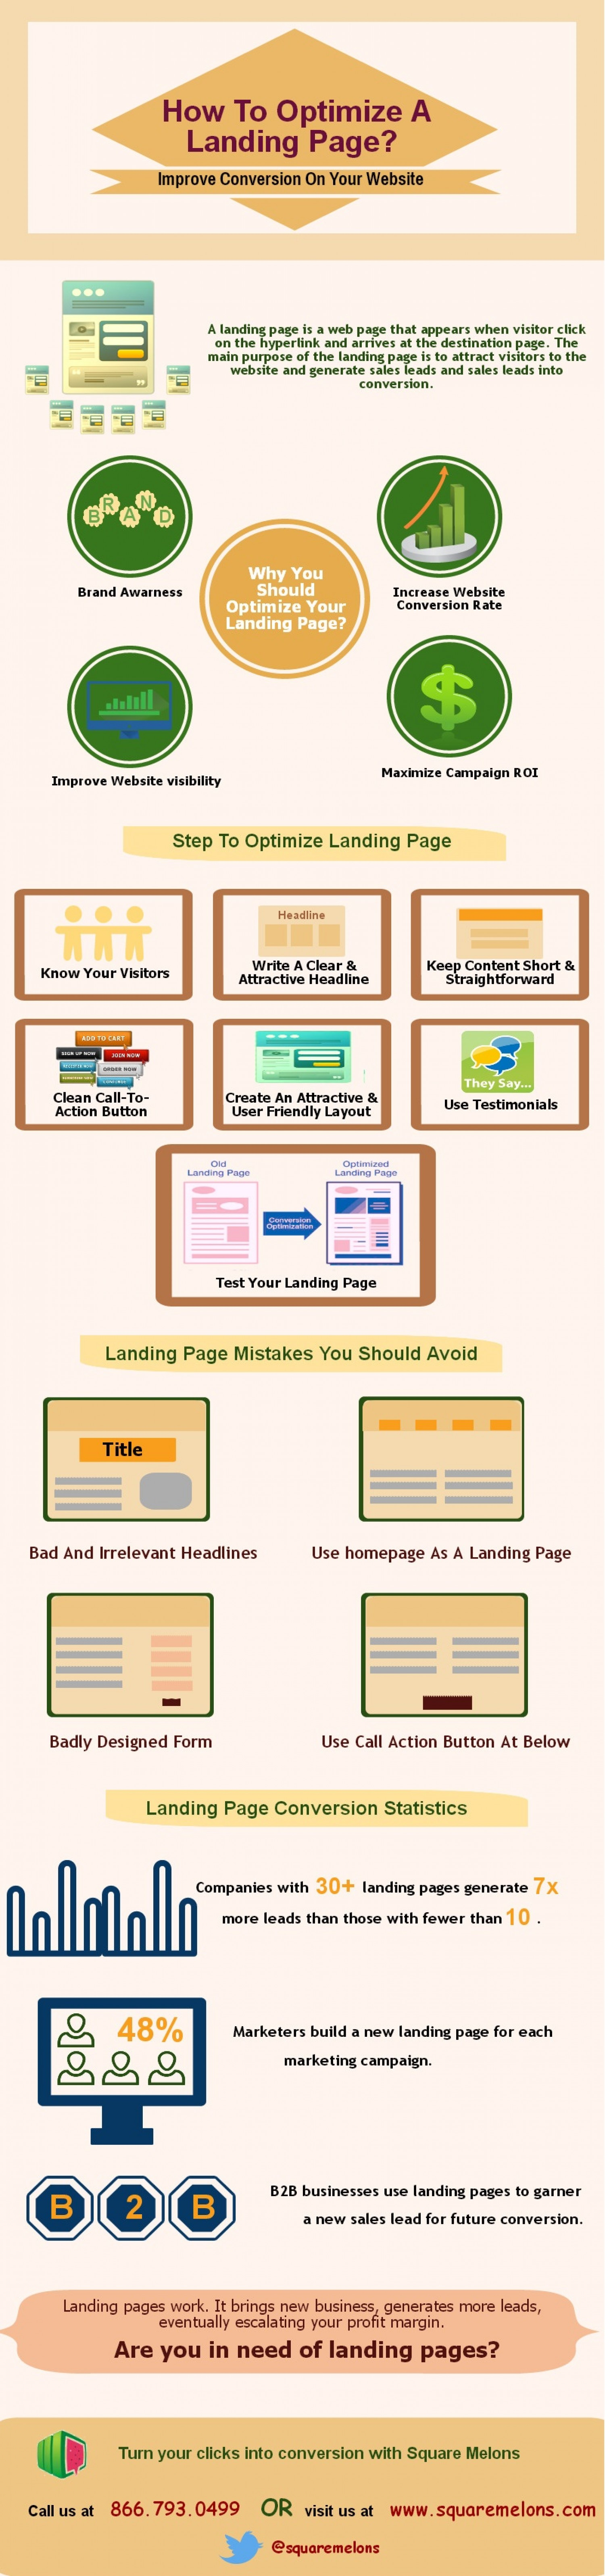 If you aim to generate easy leads, give your offers a place to shine, gain more business, and ultimately escalate your profit margin with the help your #landing_page, then follow these expert #tips_to_optimize_your_landing_page to enjoy maximum ROI. Tips to #optimize_landing_page..